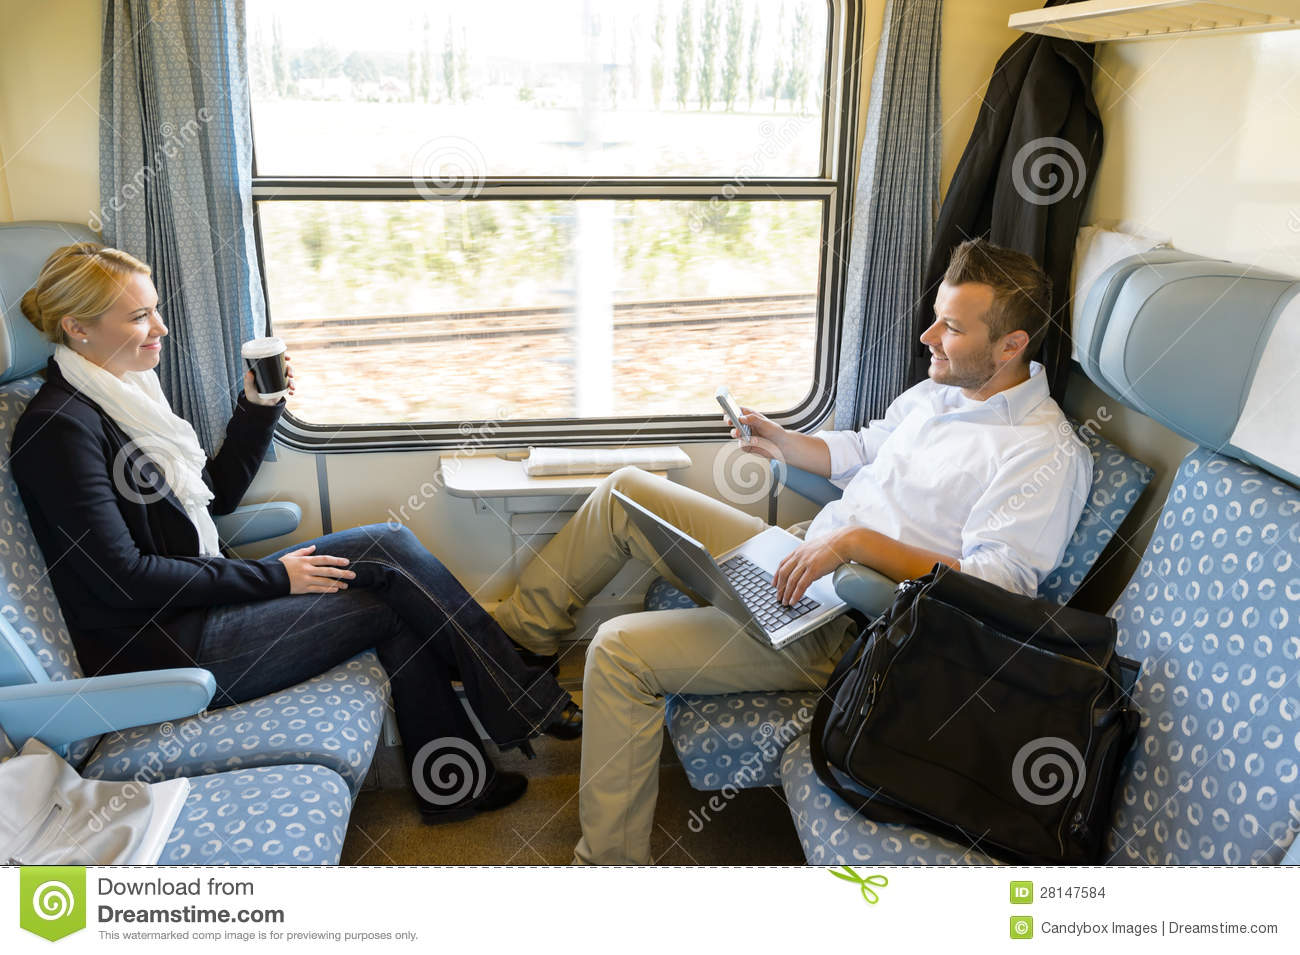 Man eating out woman on train